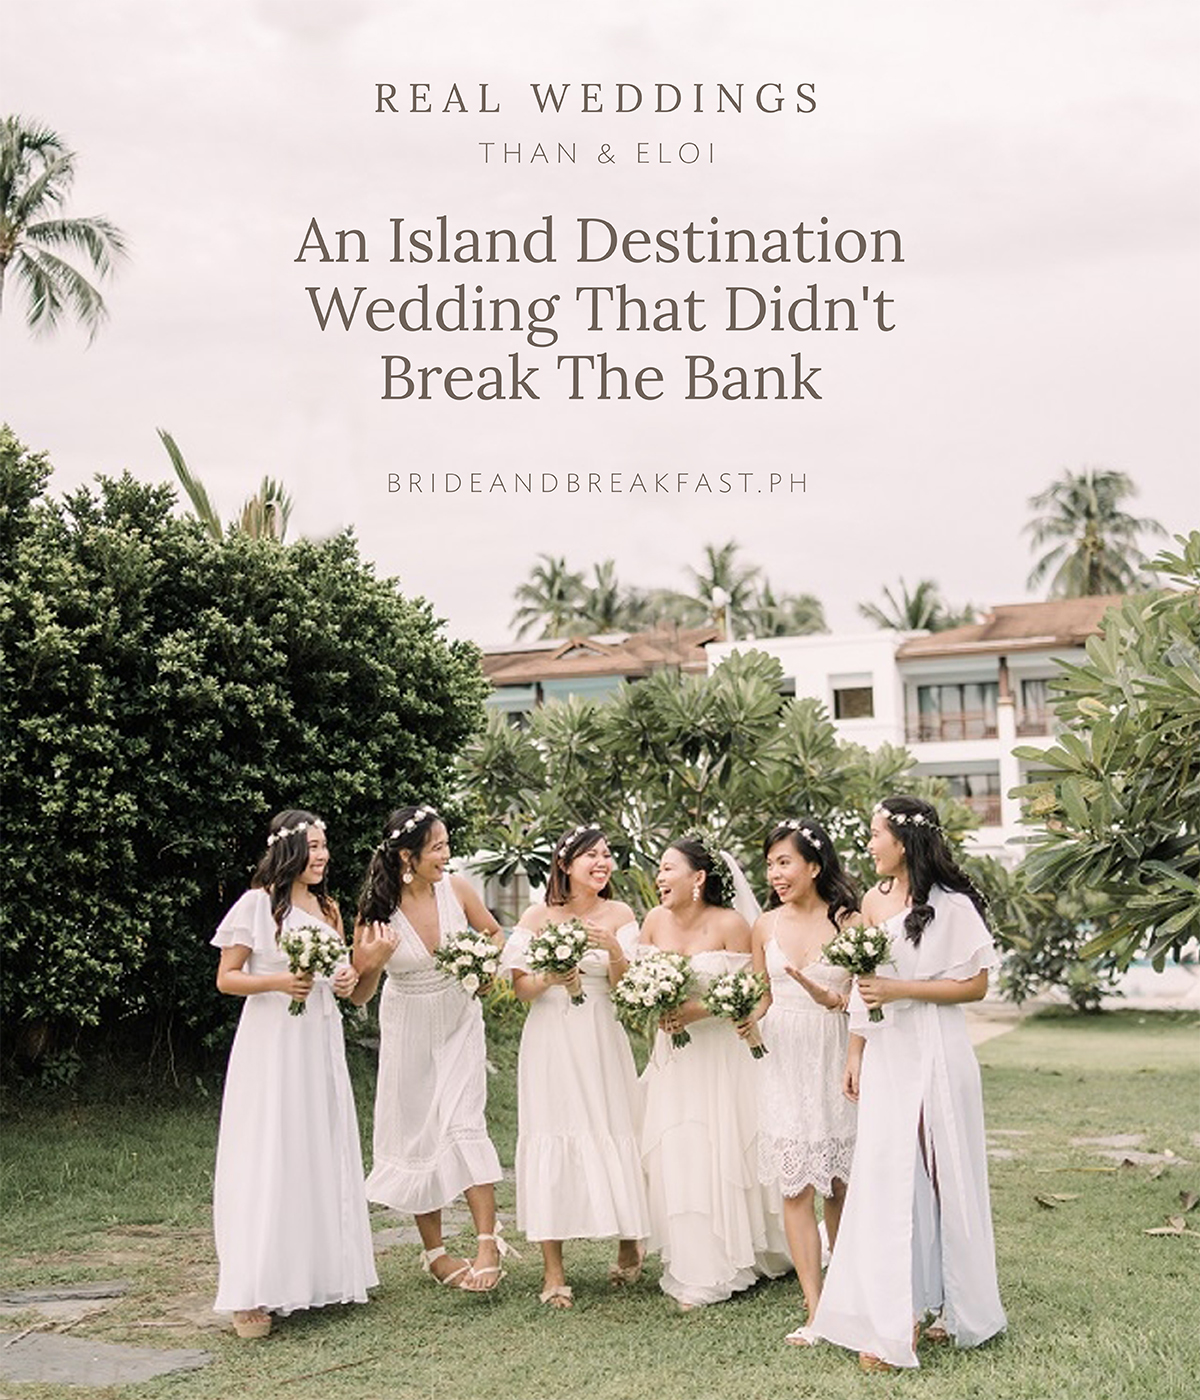 An Island Destination Wedding That Didn't Break The Bank